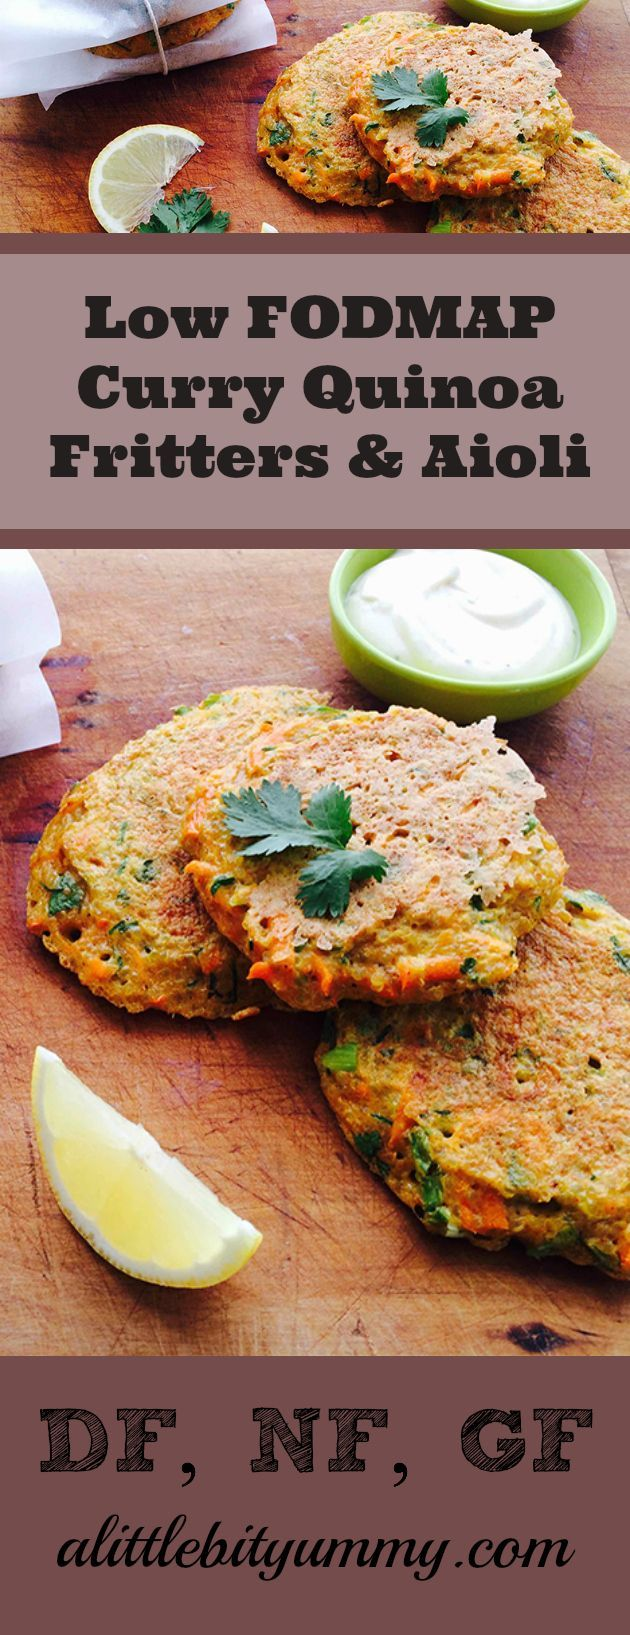 Curry Quinoa Fritters with Low FODMAP Aioli! These delicious fritters are perfect with a side salad and are Low Gluten, DF and Nut Free! Enjoy the recipe here: https://www.alittlebityummy.com/recipe/curry-quinoa-fritters-with-low-fodmap-aioli